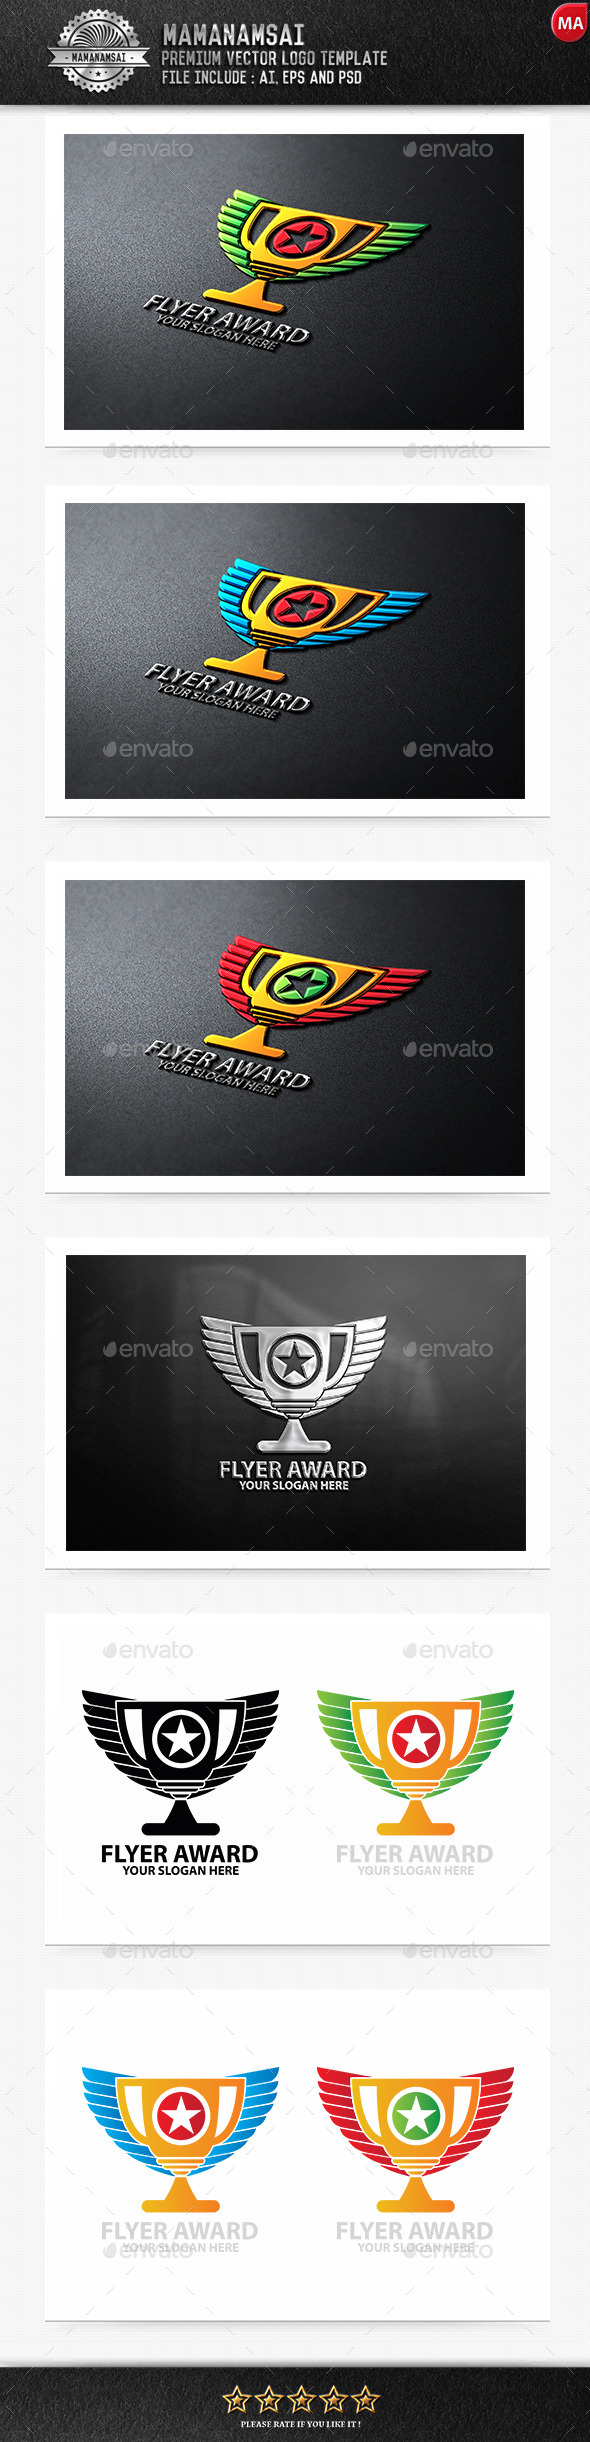 GraphicRiver Flyer Award Logo 9879028